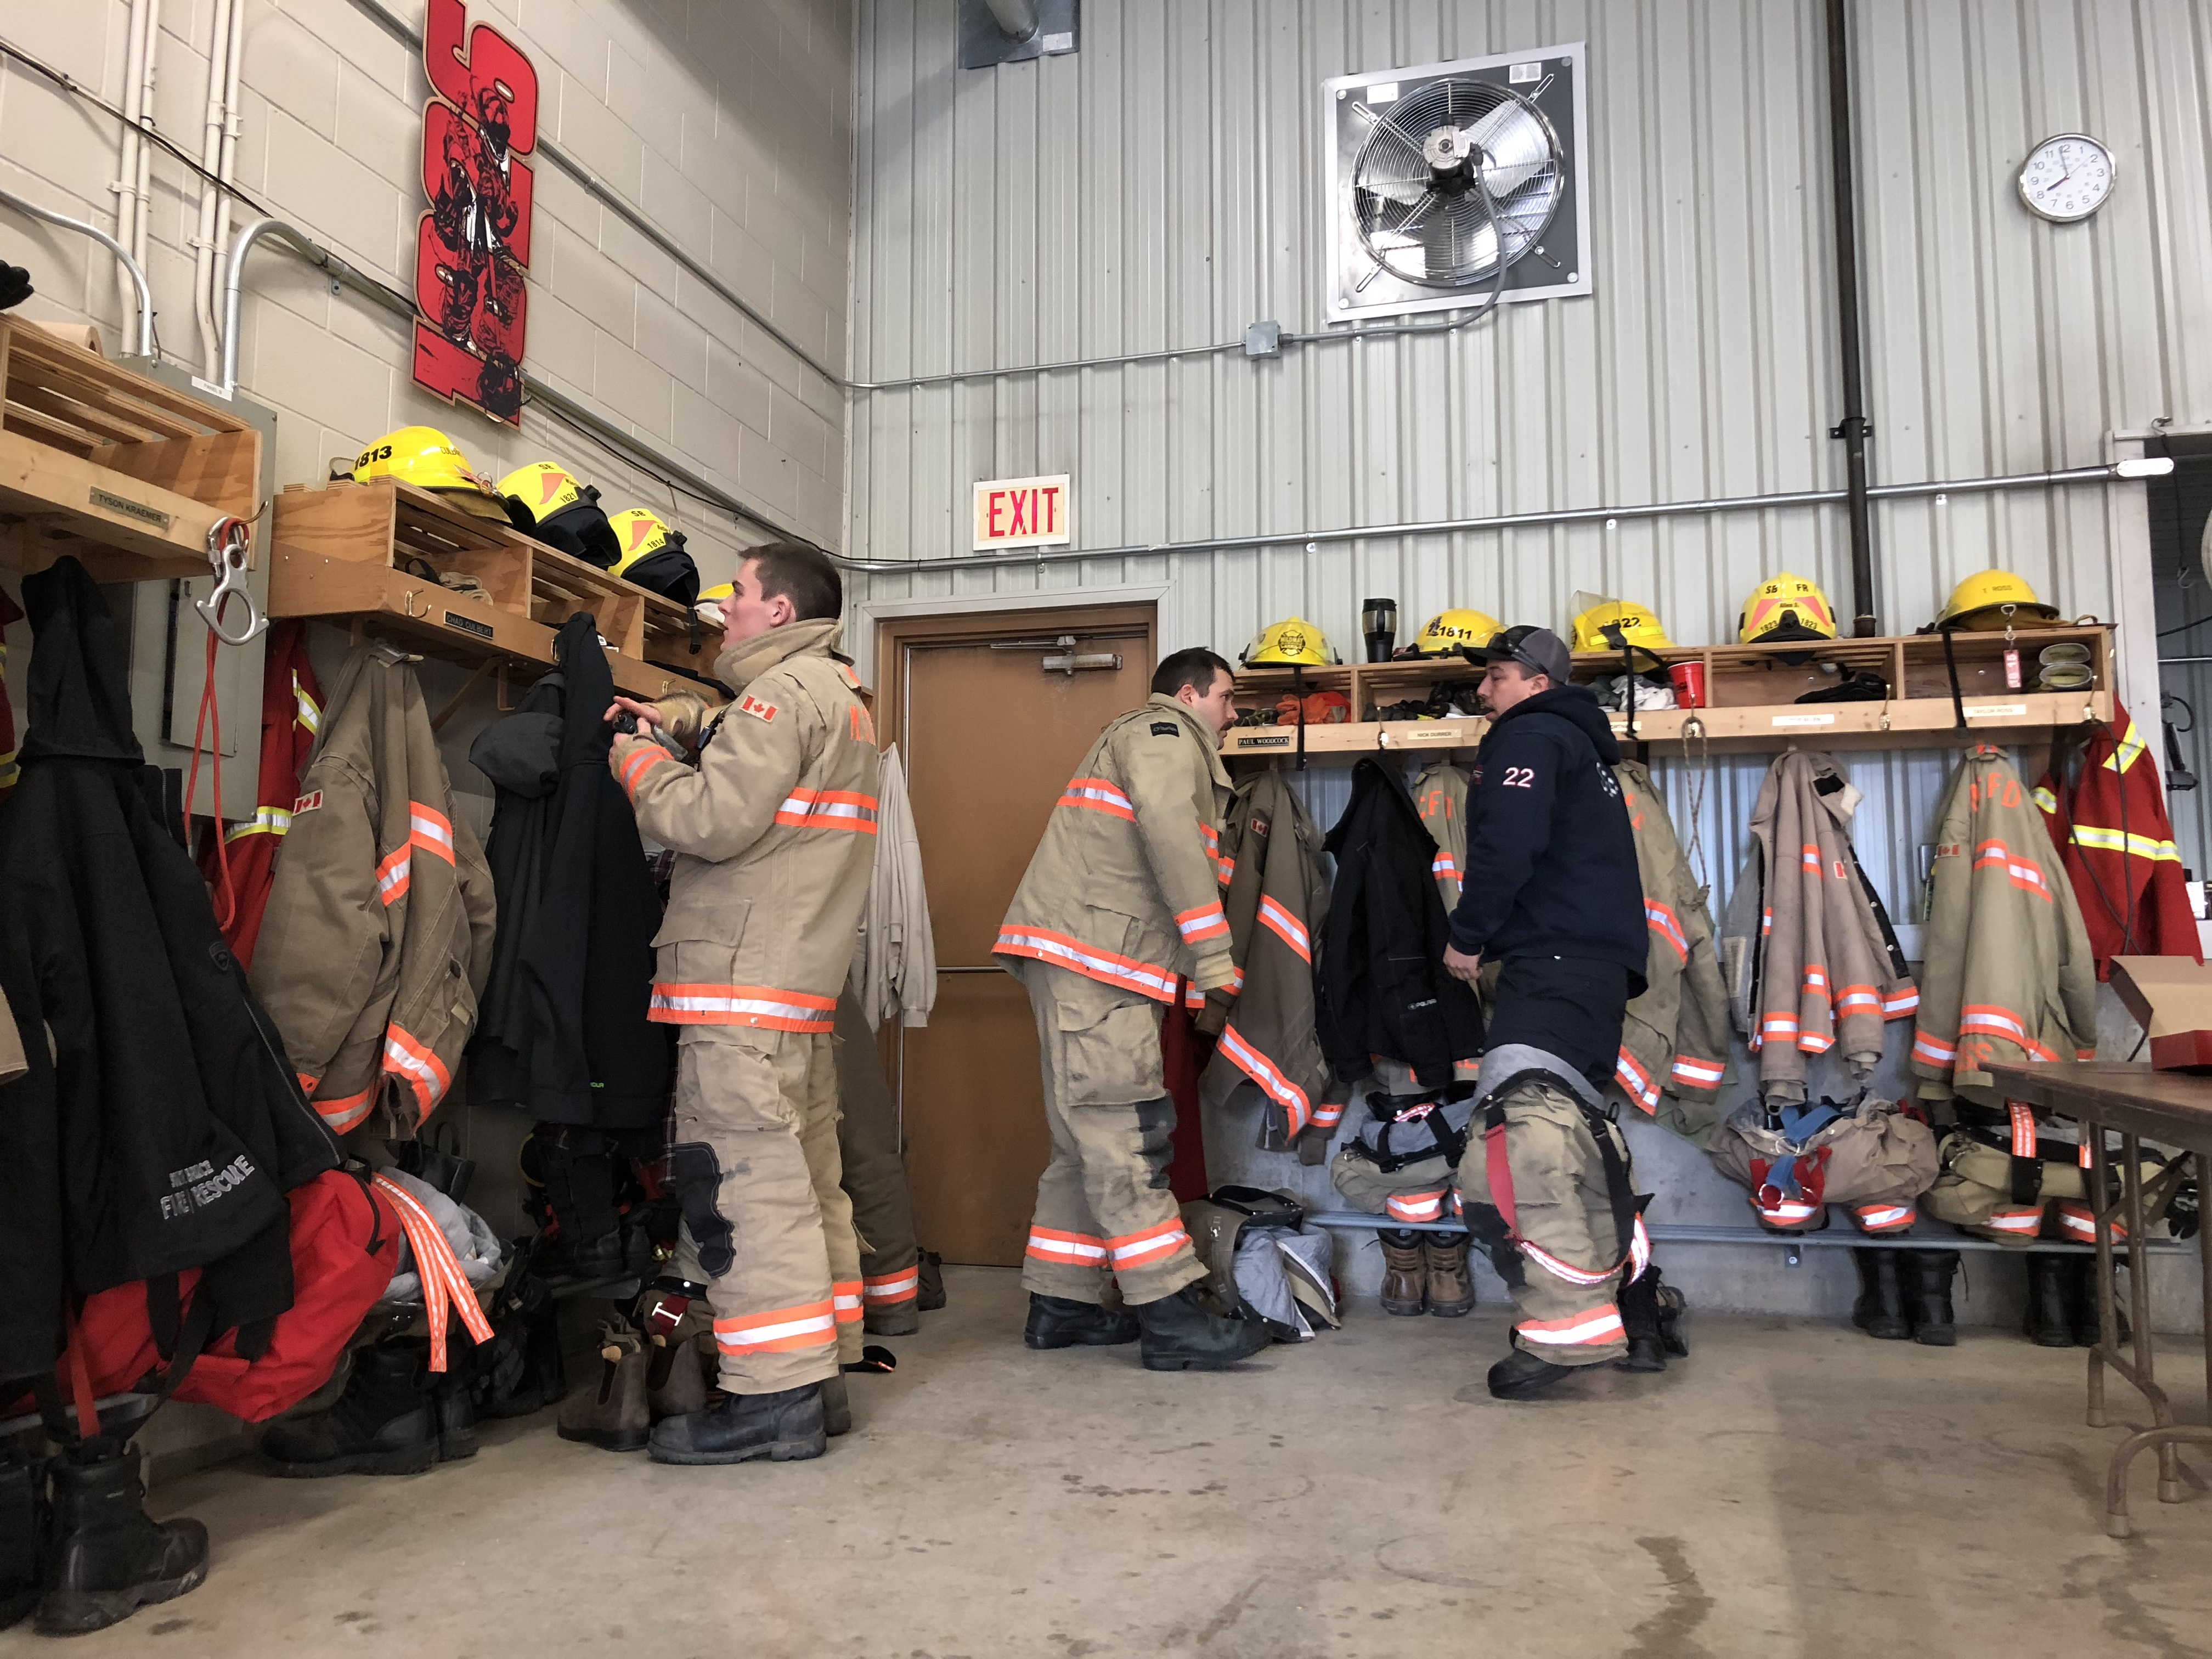 firefighters putting on protective gear in a fire station